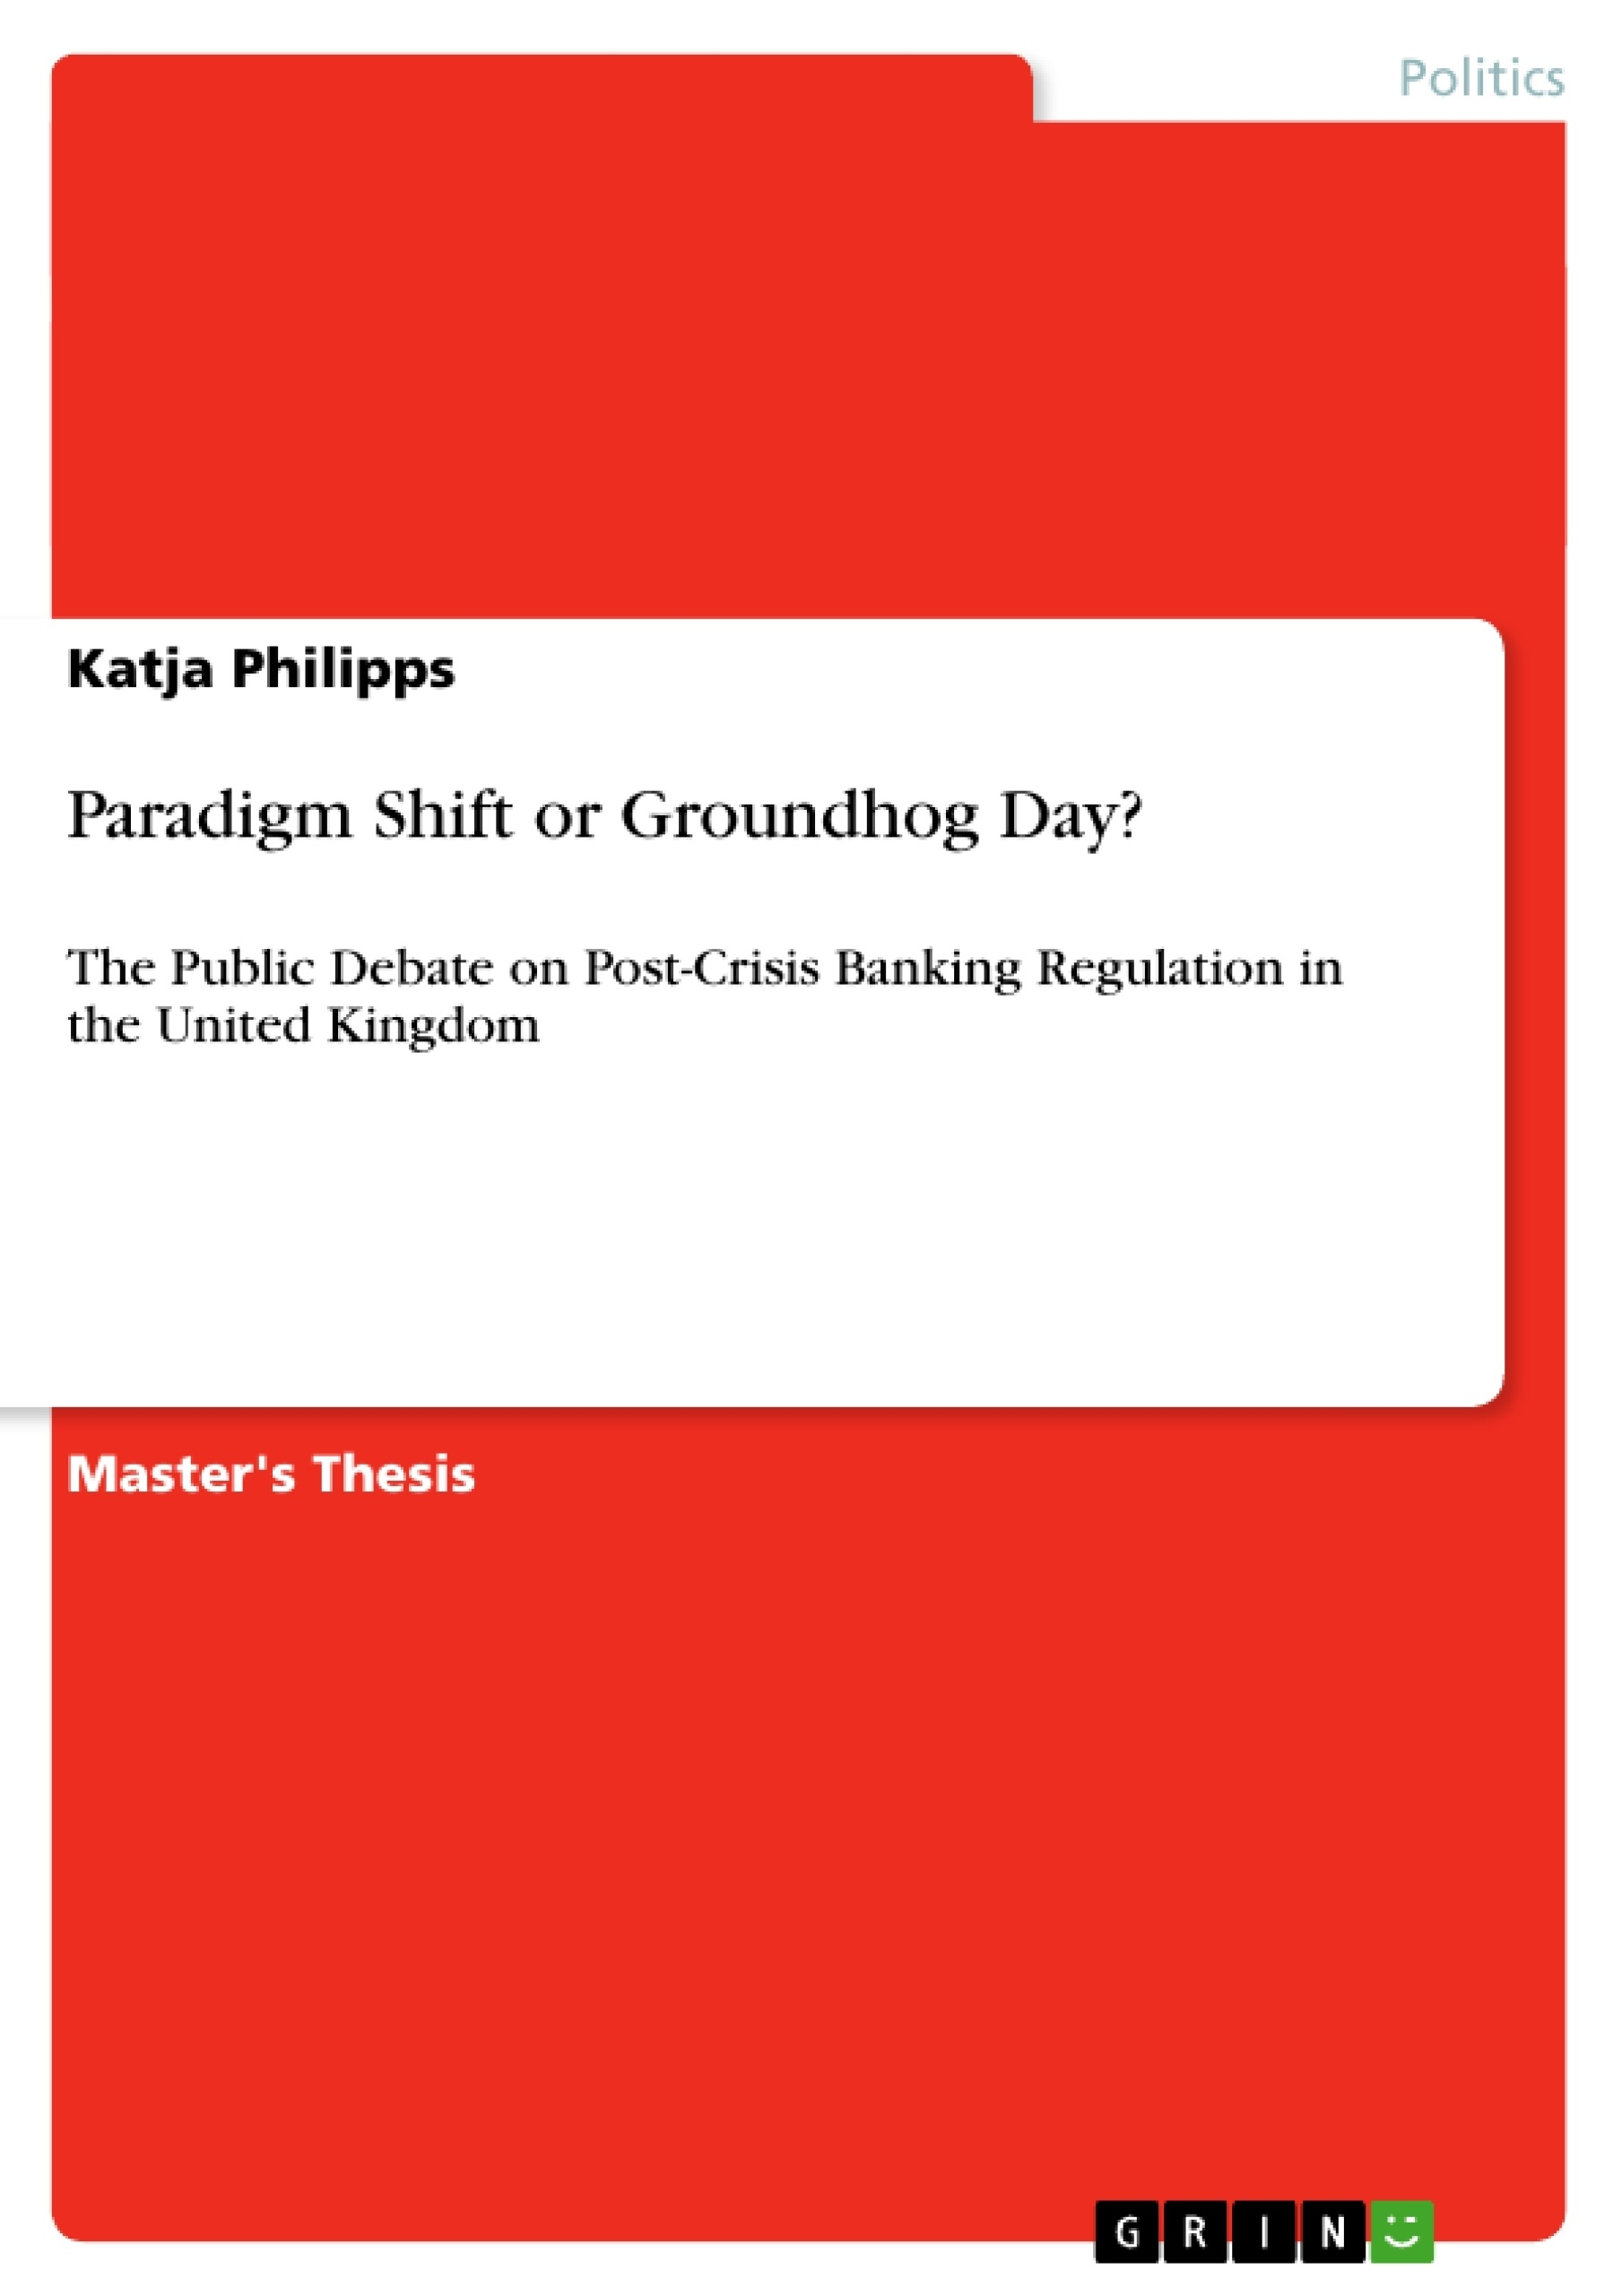 Title: Paradigm Shift or Groundhog Day?